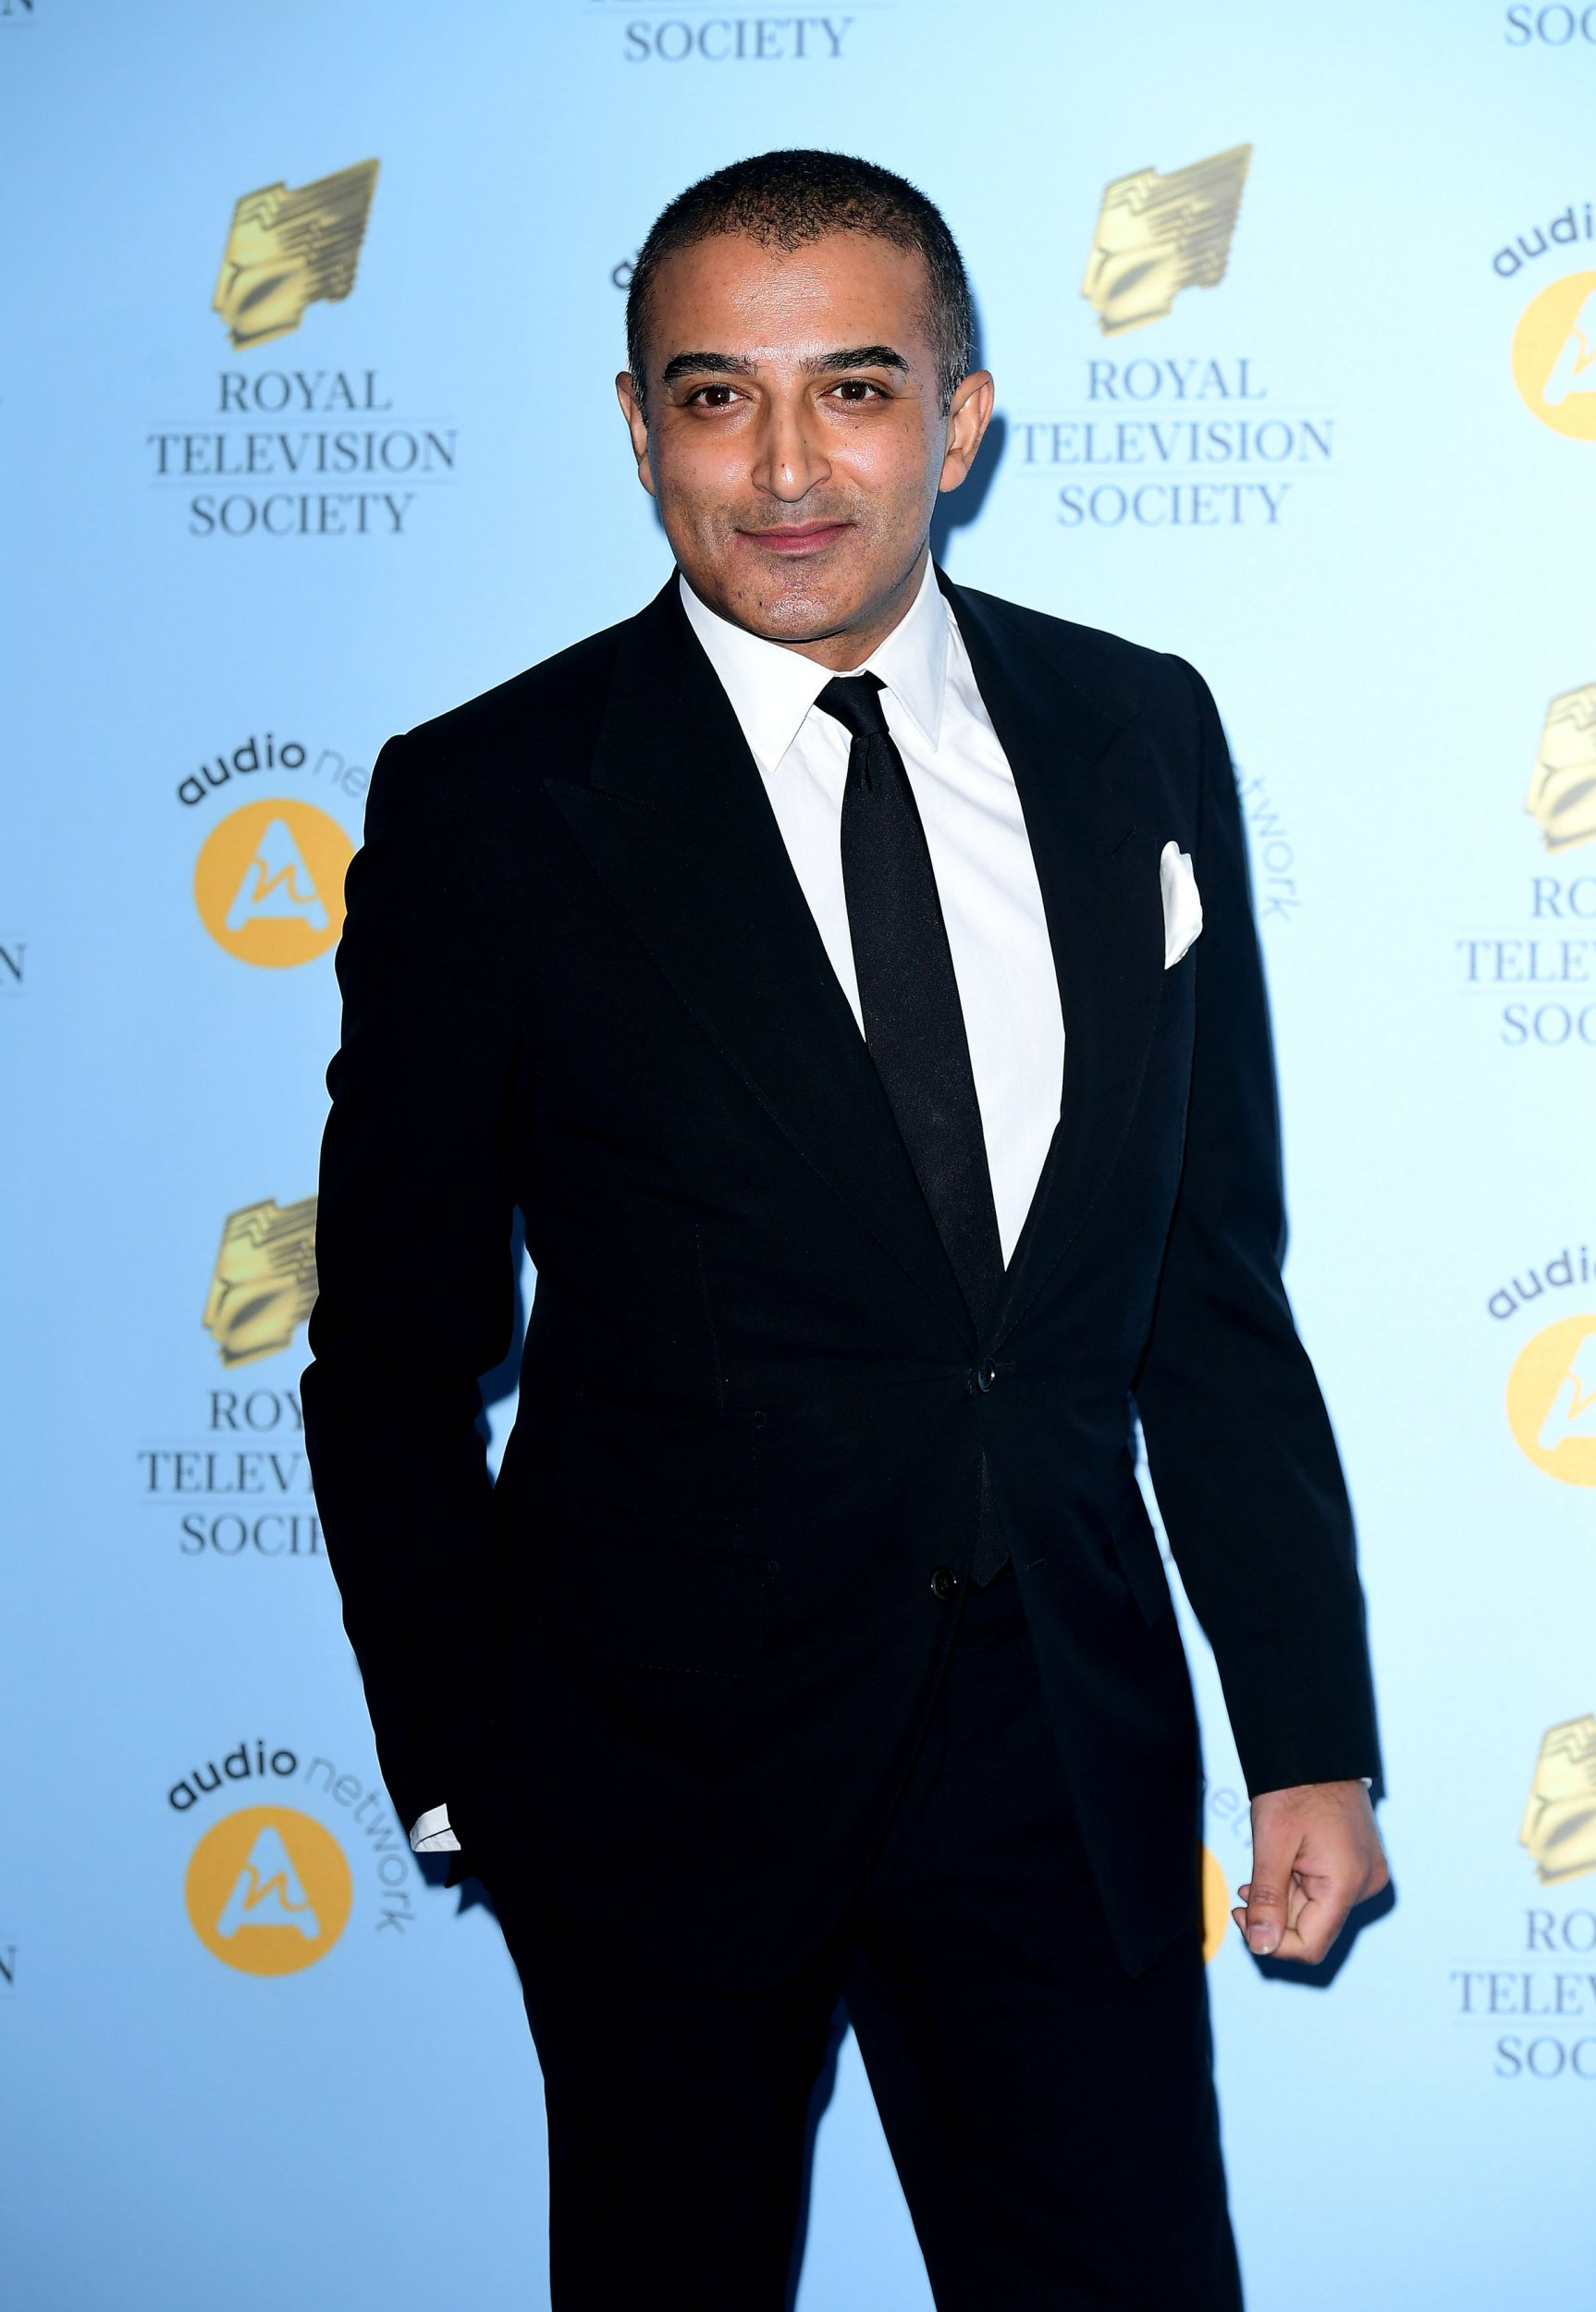 Adil Ray attending the Royal Television Society Programme Awards at Grosvenor House Hotel, Park Lane, London. PRESS ASSOCIATION Photo. Picture date: Tuesday 20th March, 2018. Photo credit should read: Ian West/PA Wire